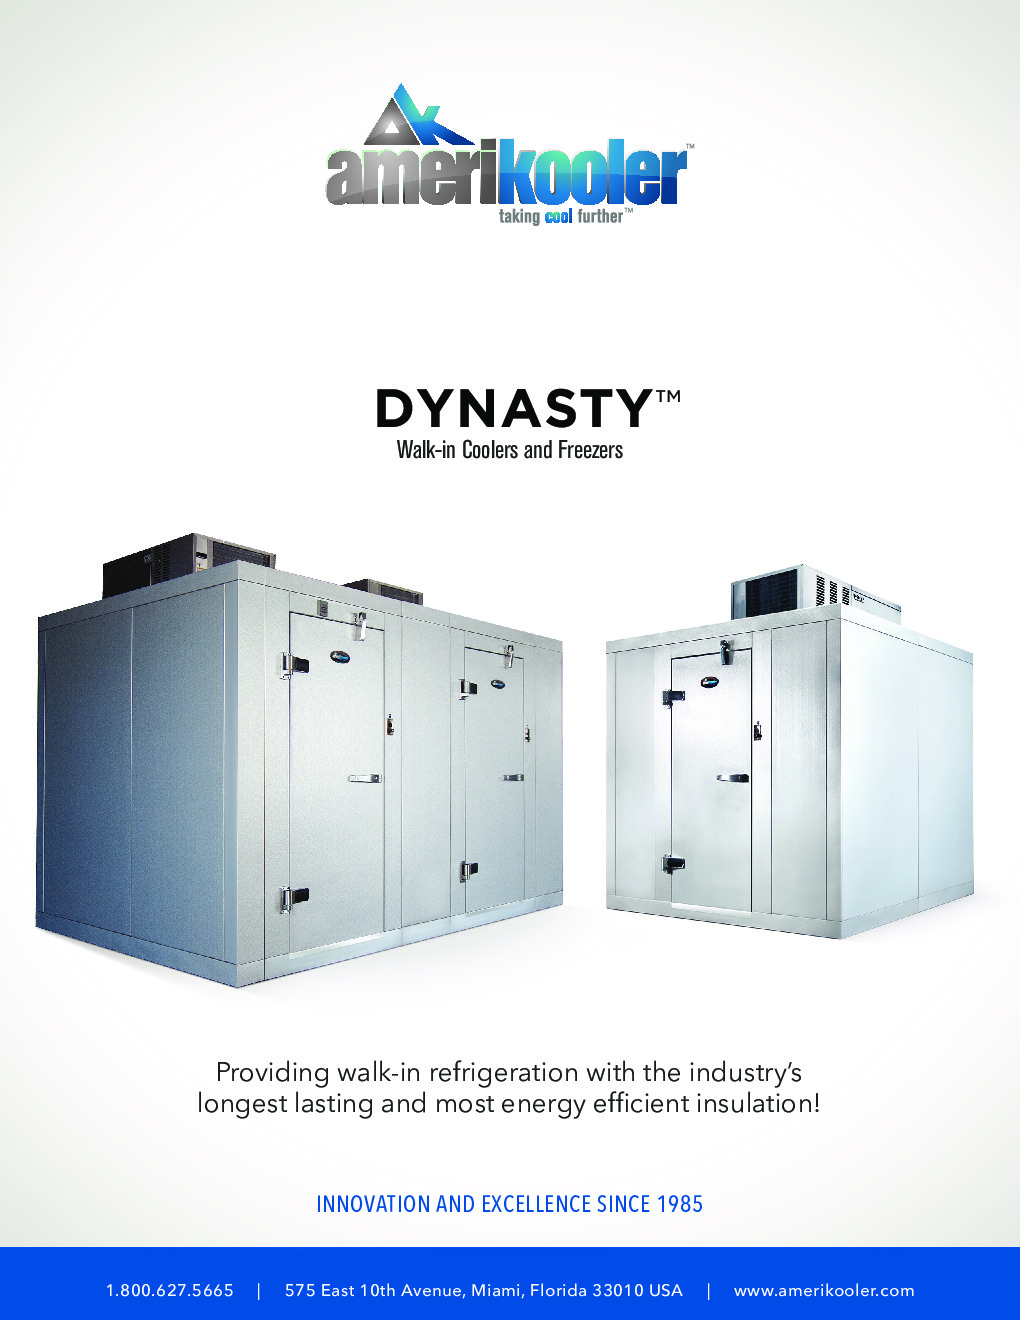 AmeriKooler DW081677N-8/8-RM 8' X 16' Walk-In Cooler, 8' L Cooler without Floor and 8' L Freezer, Remote